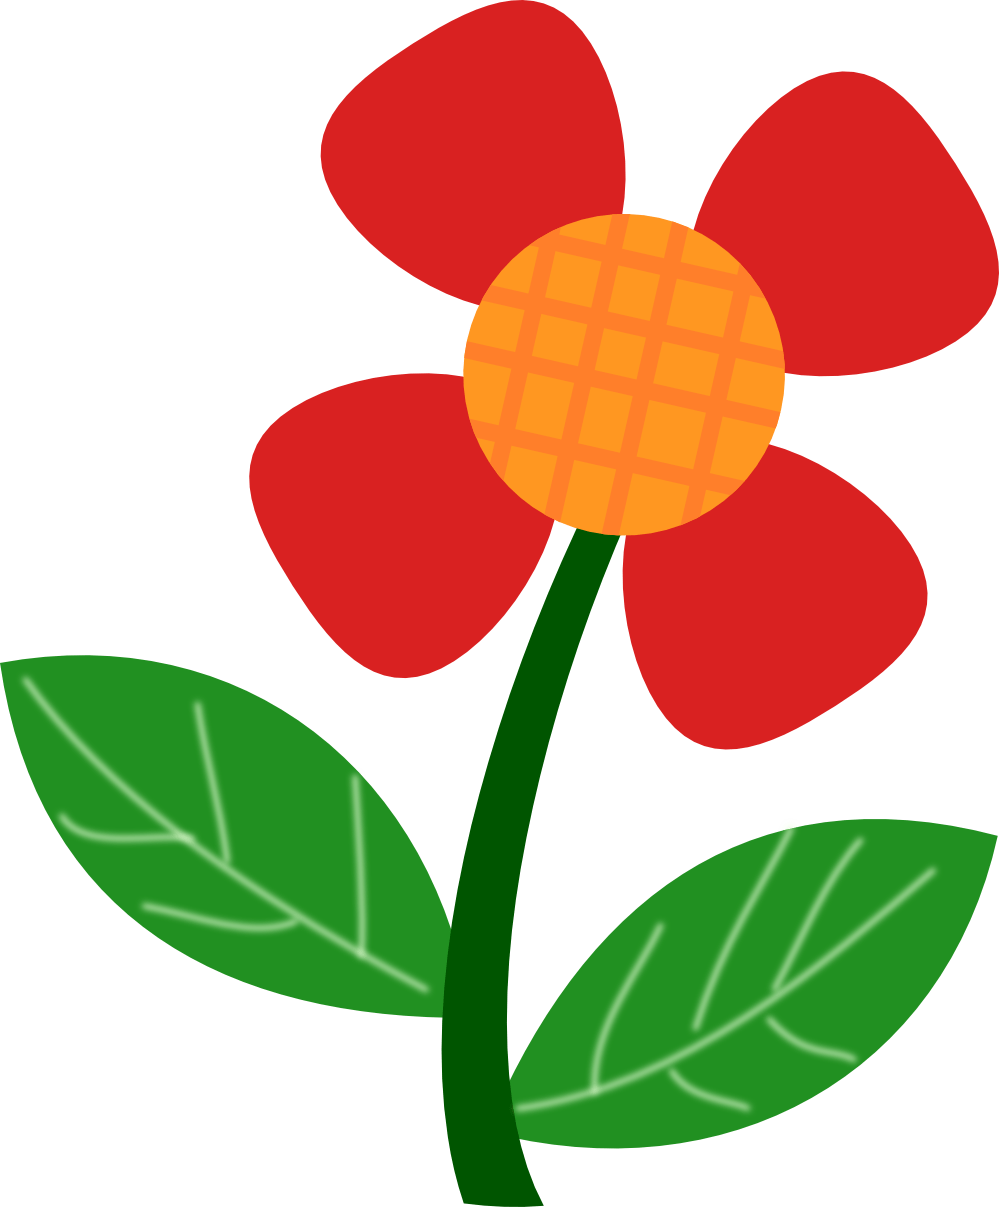 medium resolution of flower clipart free clipart images 3